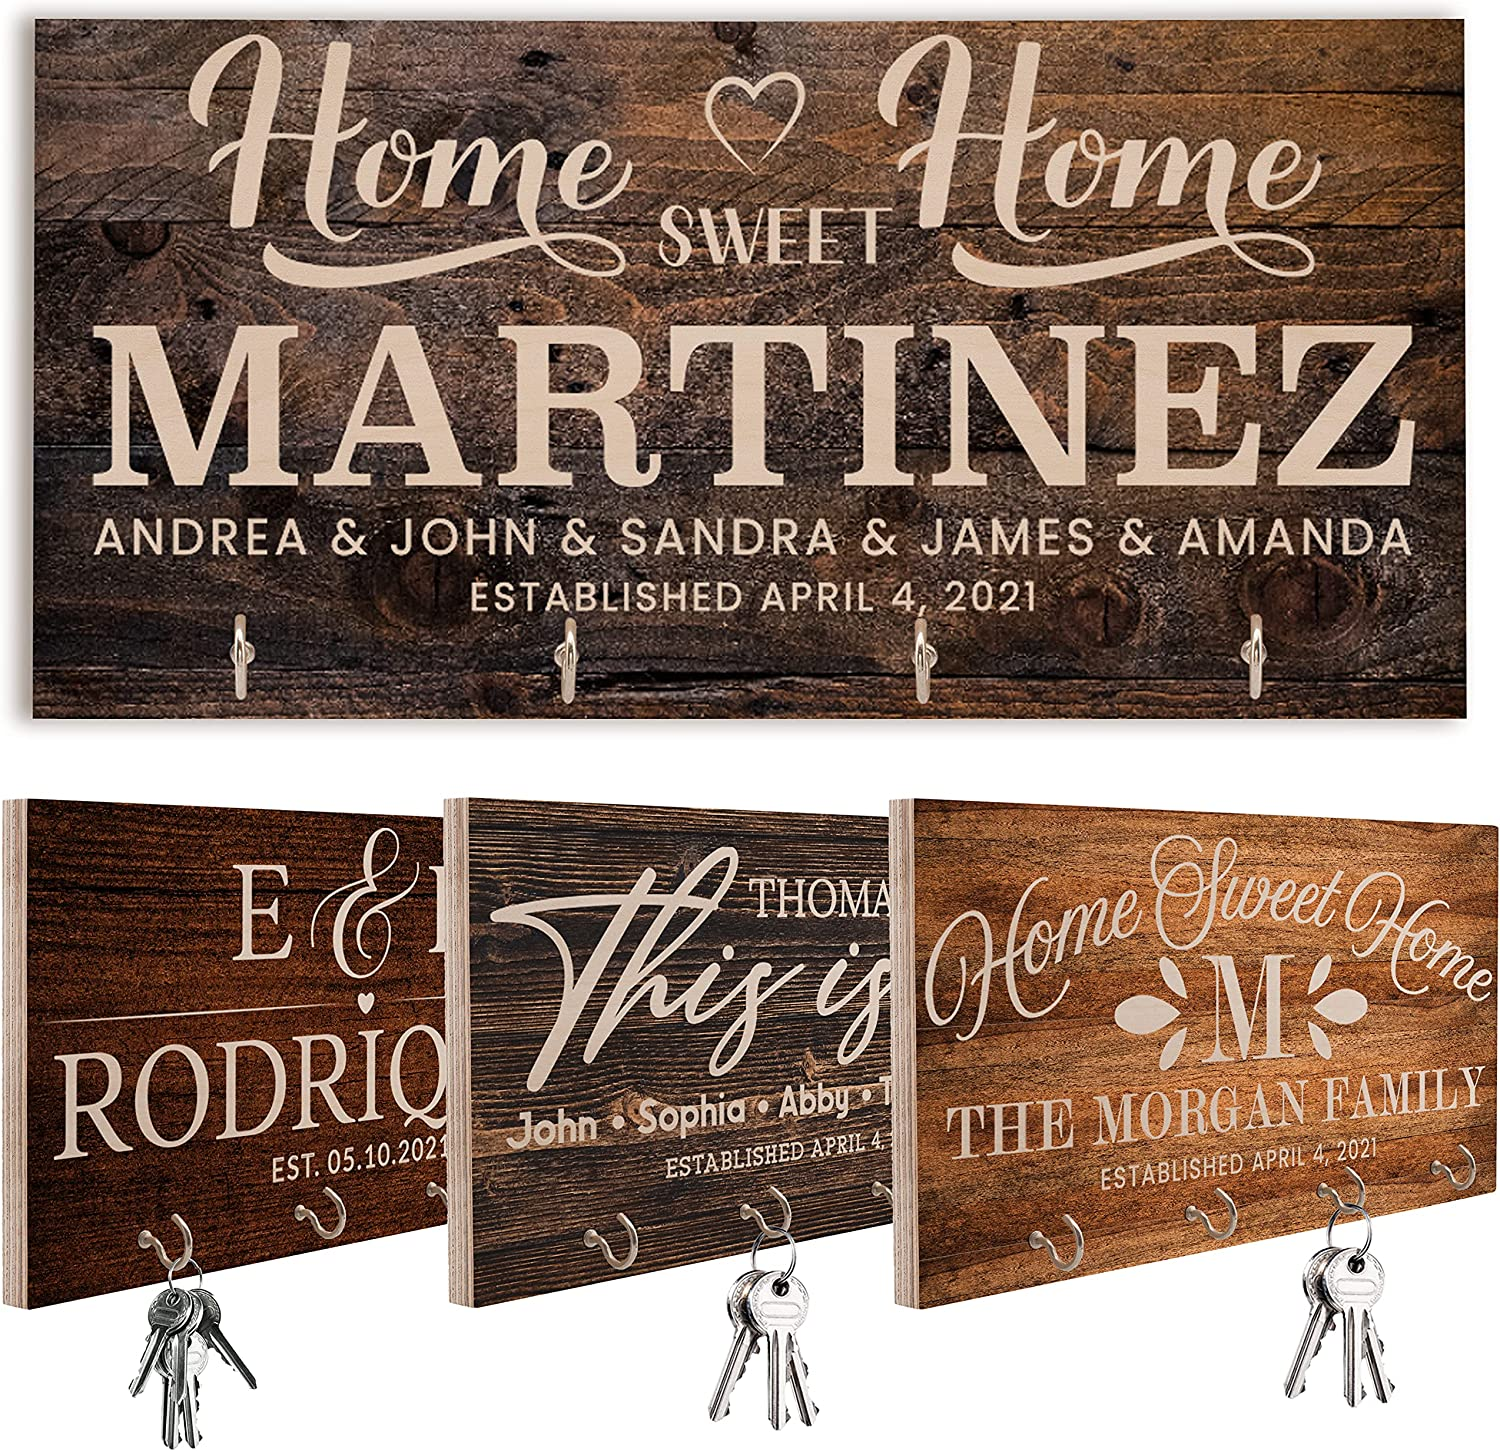 Personalized Key Hook for Wall - Cuztomized Wooden Key Hooks Decorative for Home Kitchen Farmhouse Decor - Custom Organizer Mother's Day Gift for Key Bill Glass Holder for Entryway Storage Hallway C01